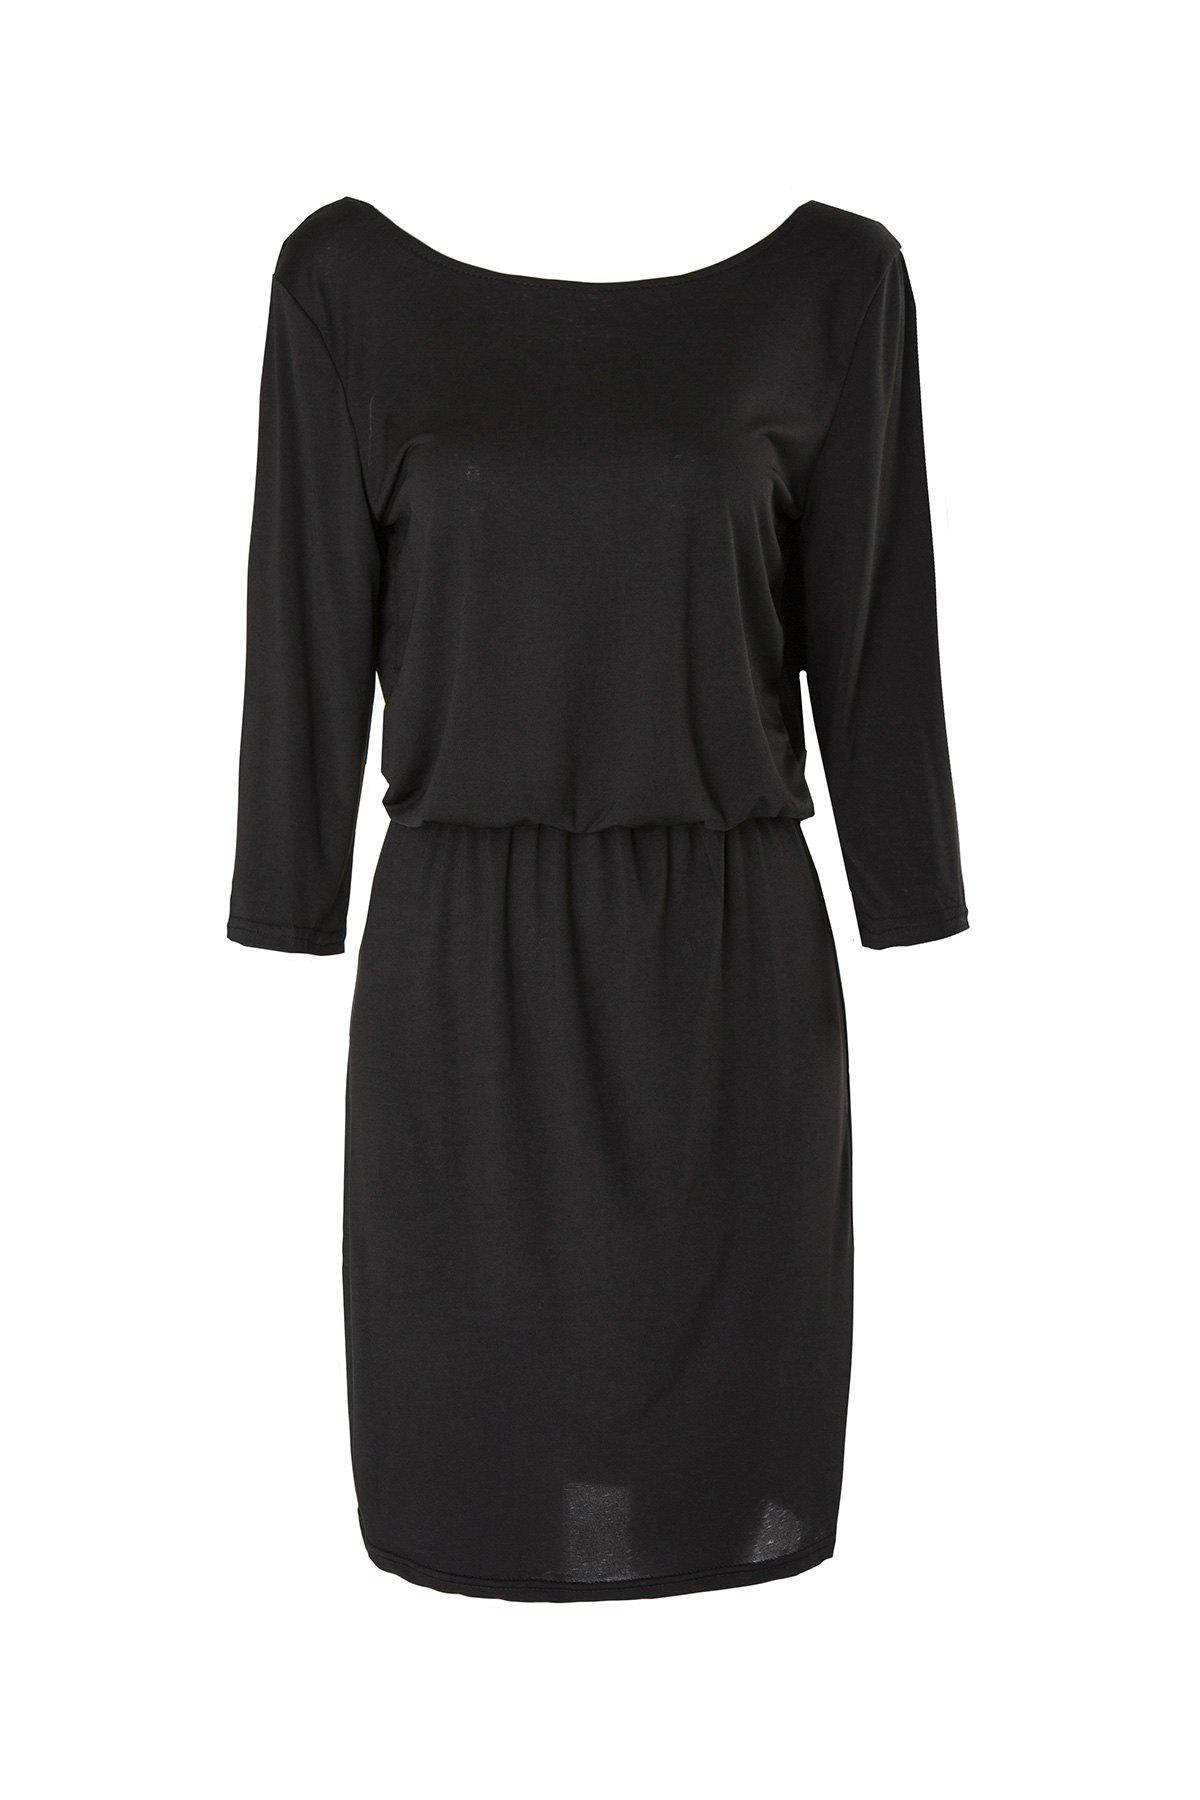 Shop Sexy Solid Color Slash Collar 3/4 Sleeve Elastic Waist Dress For Women